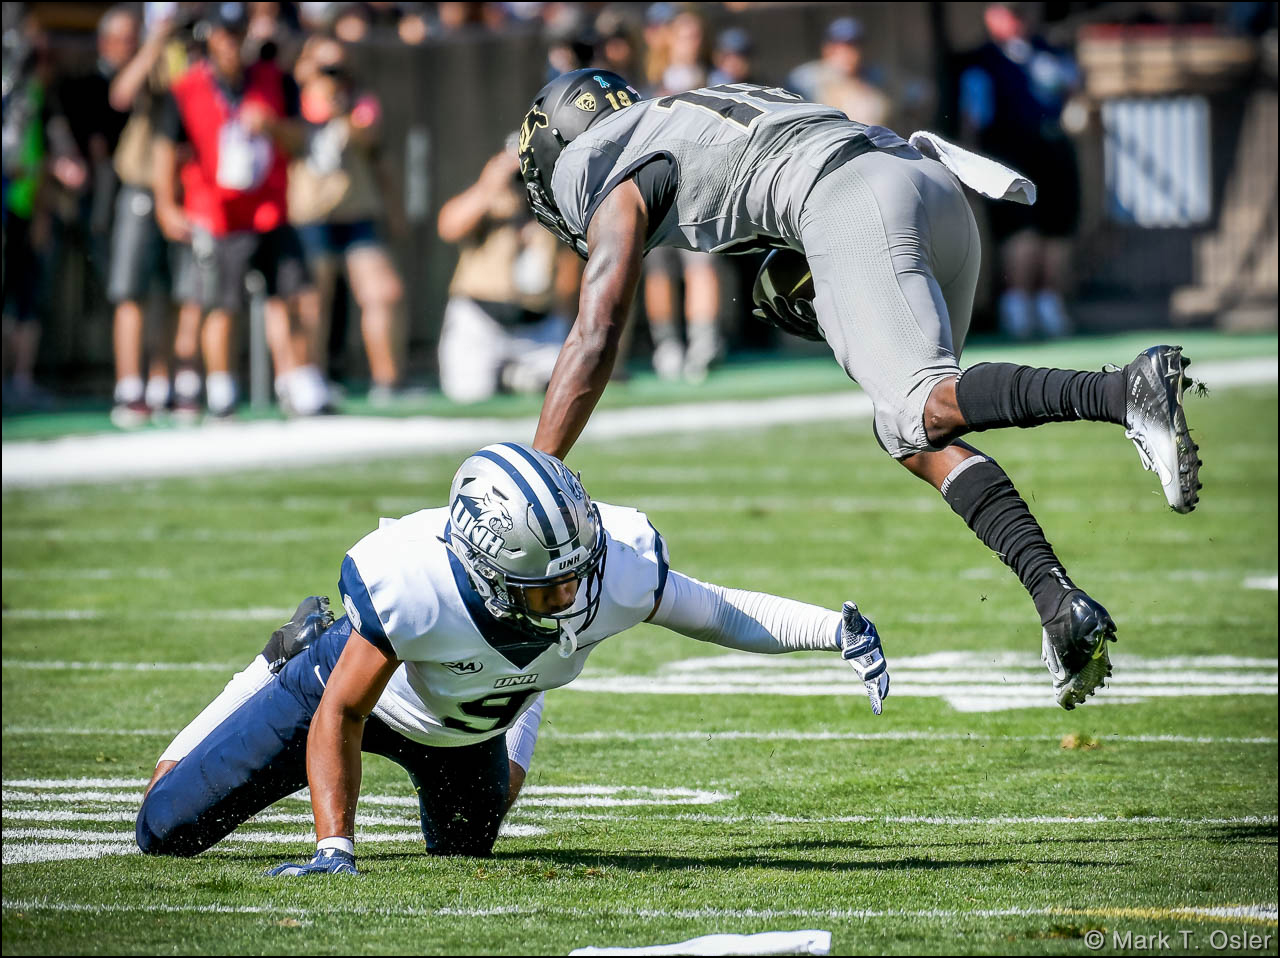 UNH cornerback Isiah Perkins (#9) takes down CU wide receiver Tony Brown (#18) for a 2-yard gain during the first quarter.